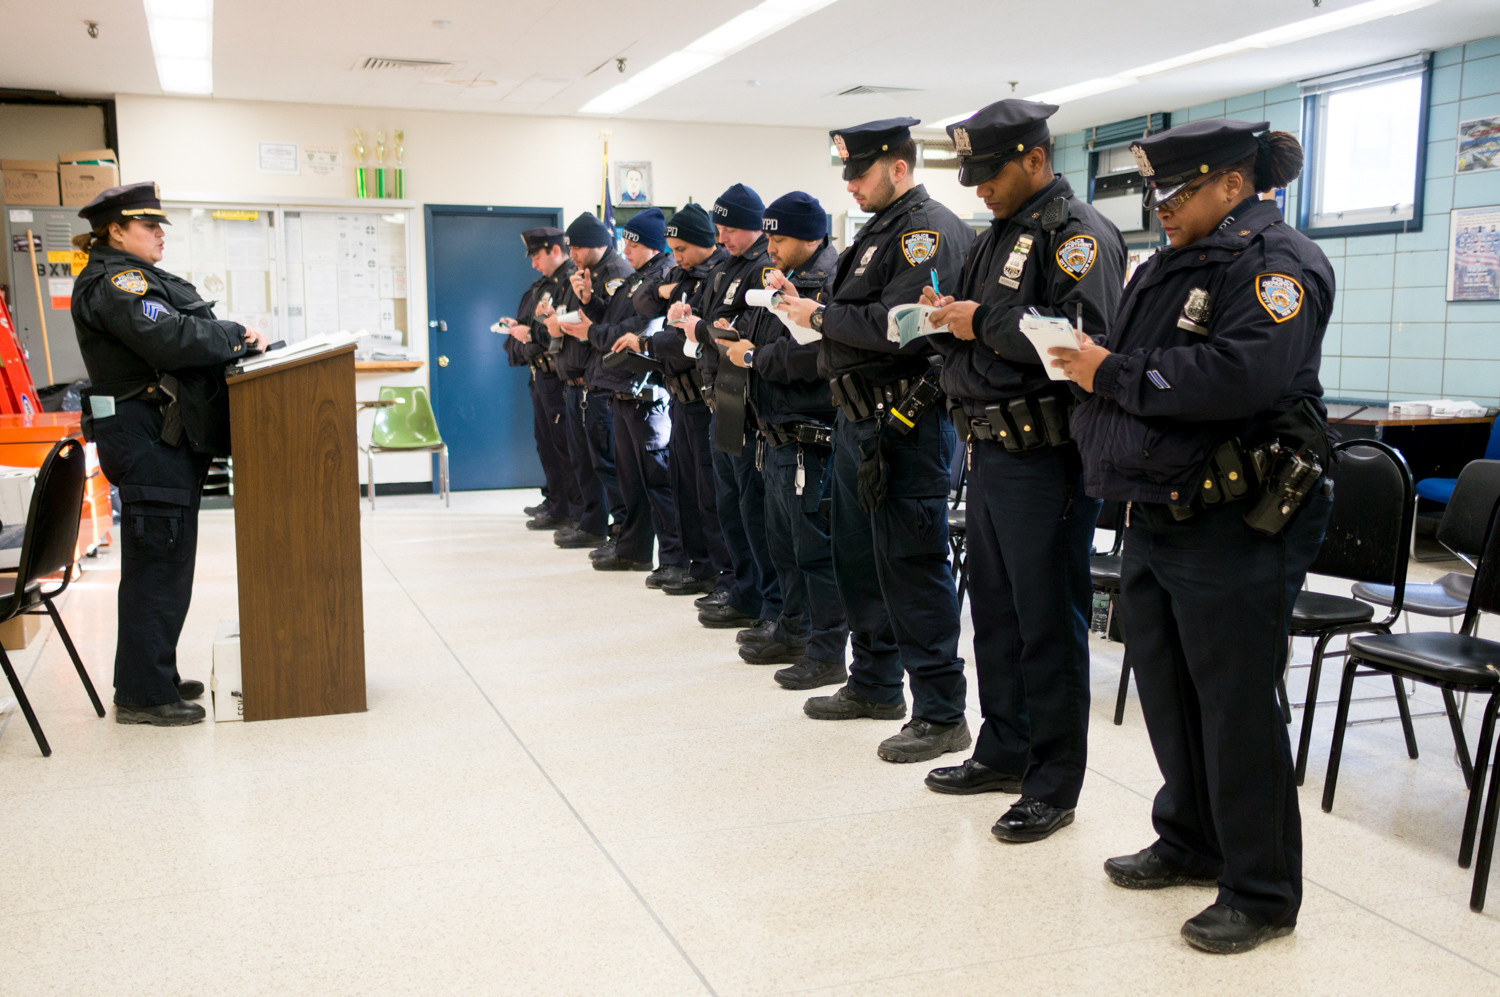 Police officers receive their assignments at roll call in the 50th Precinct. Crime in the precinct is down slightly in 2017, with 974 reported crimes across seven major felony categories.